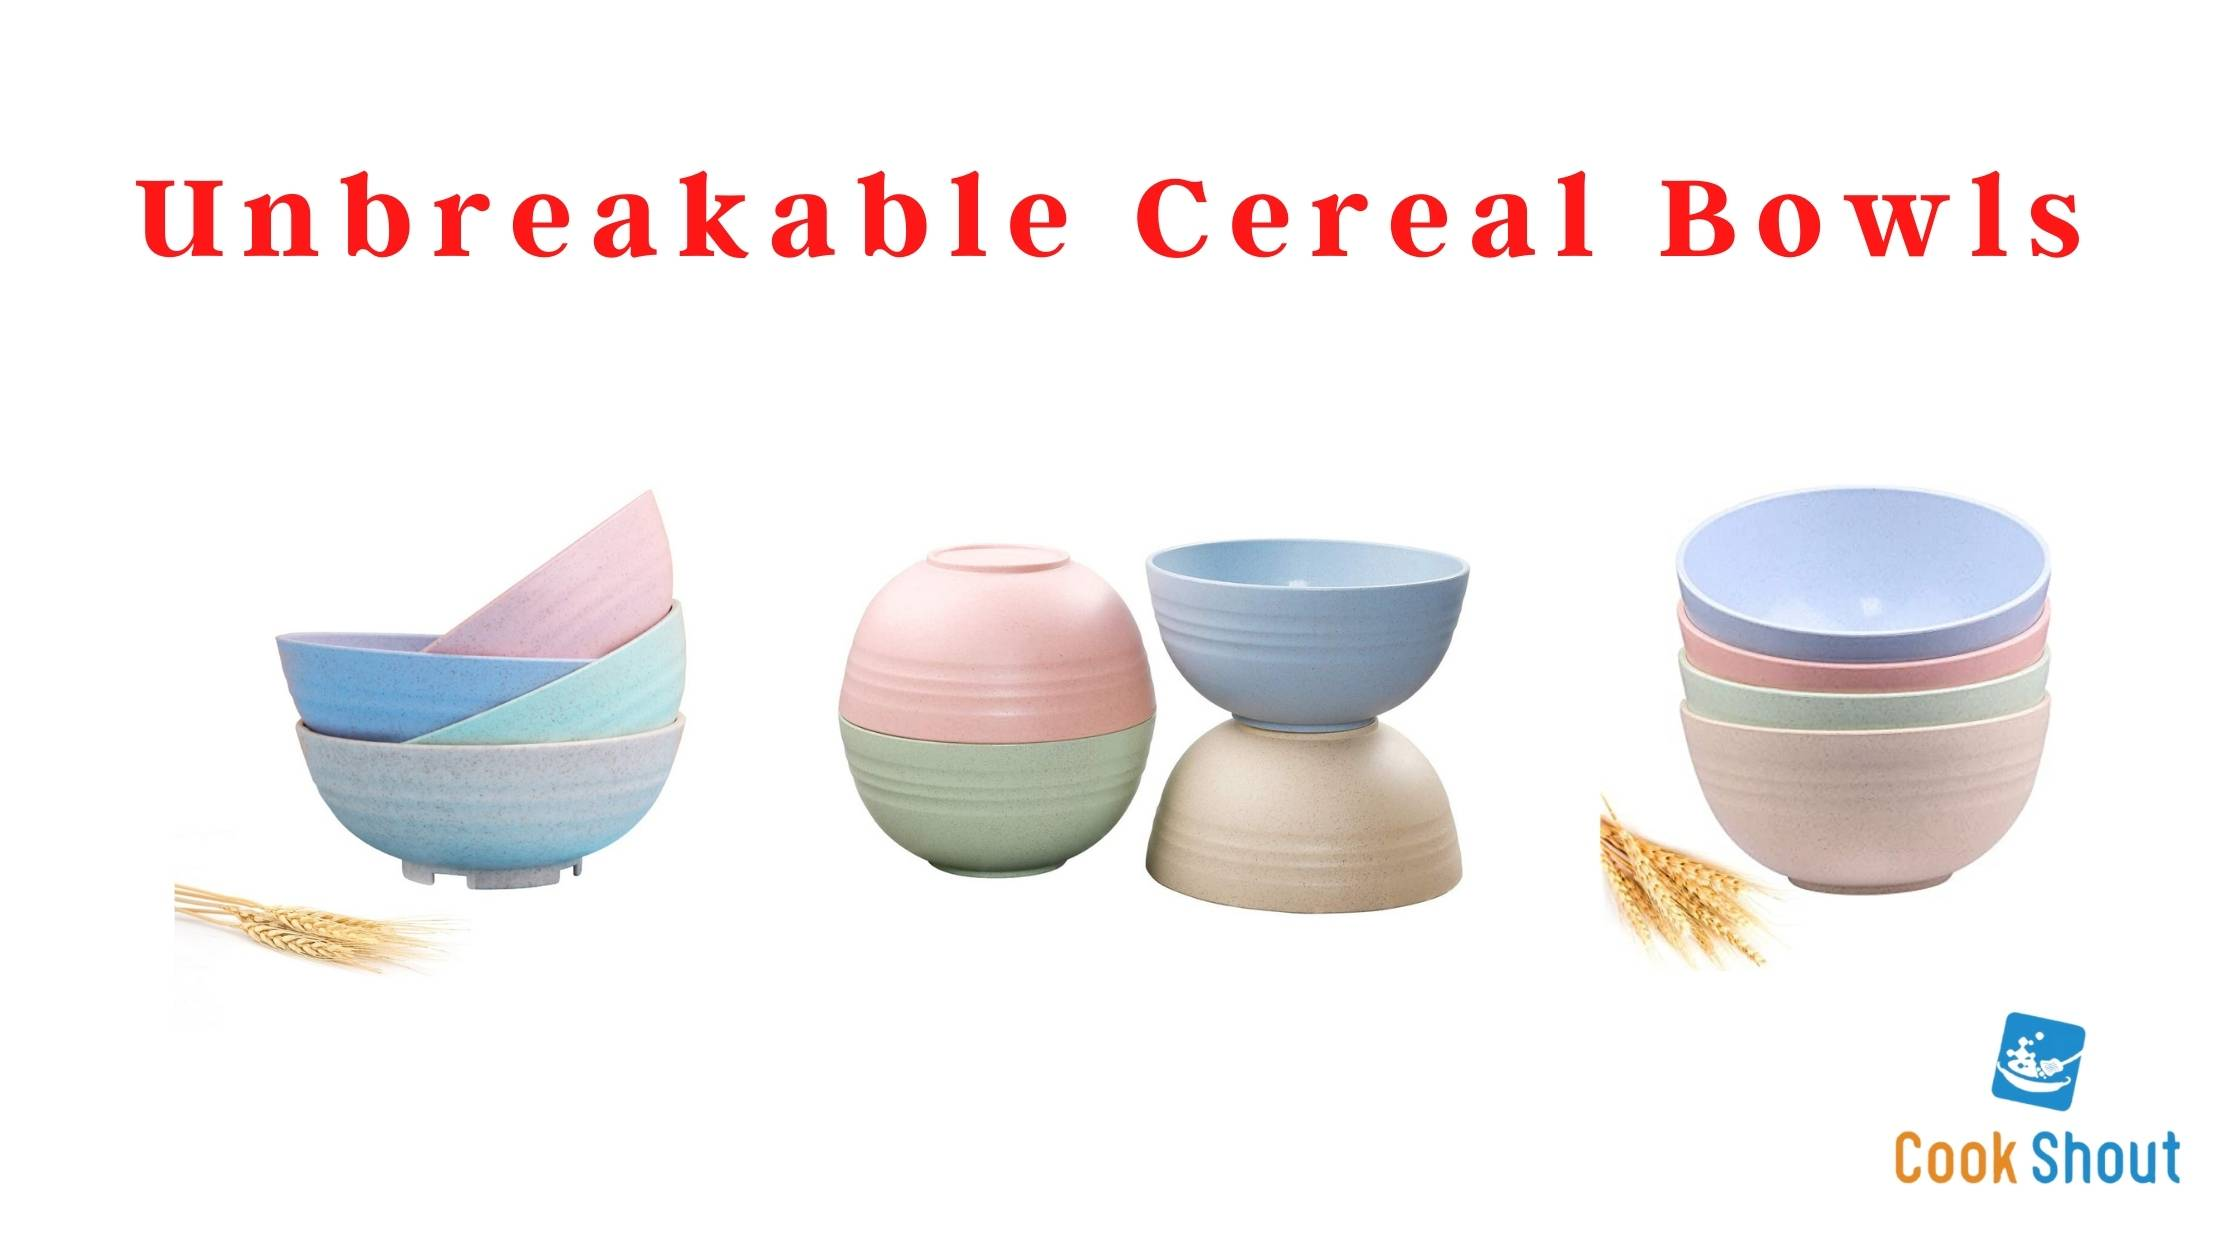 Unbreakable Cereal Bowls